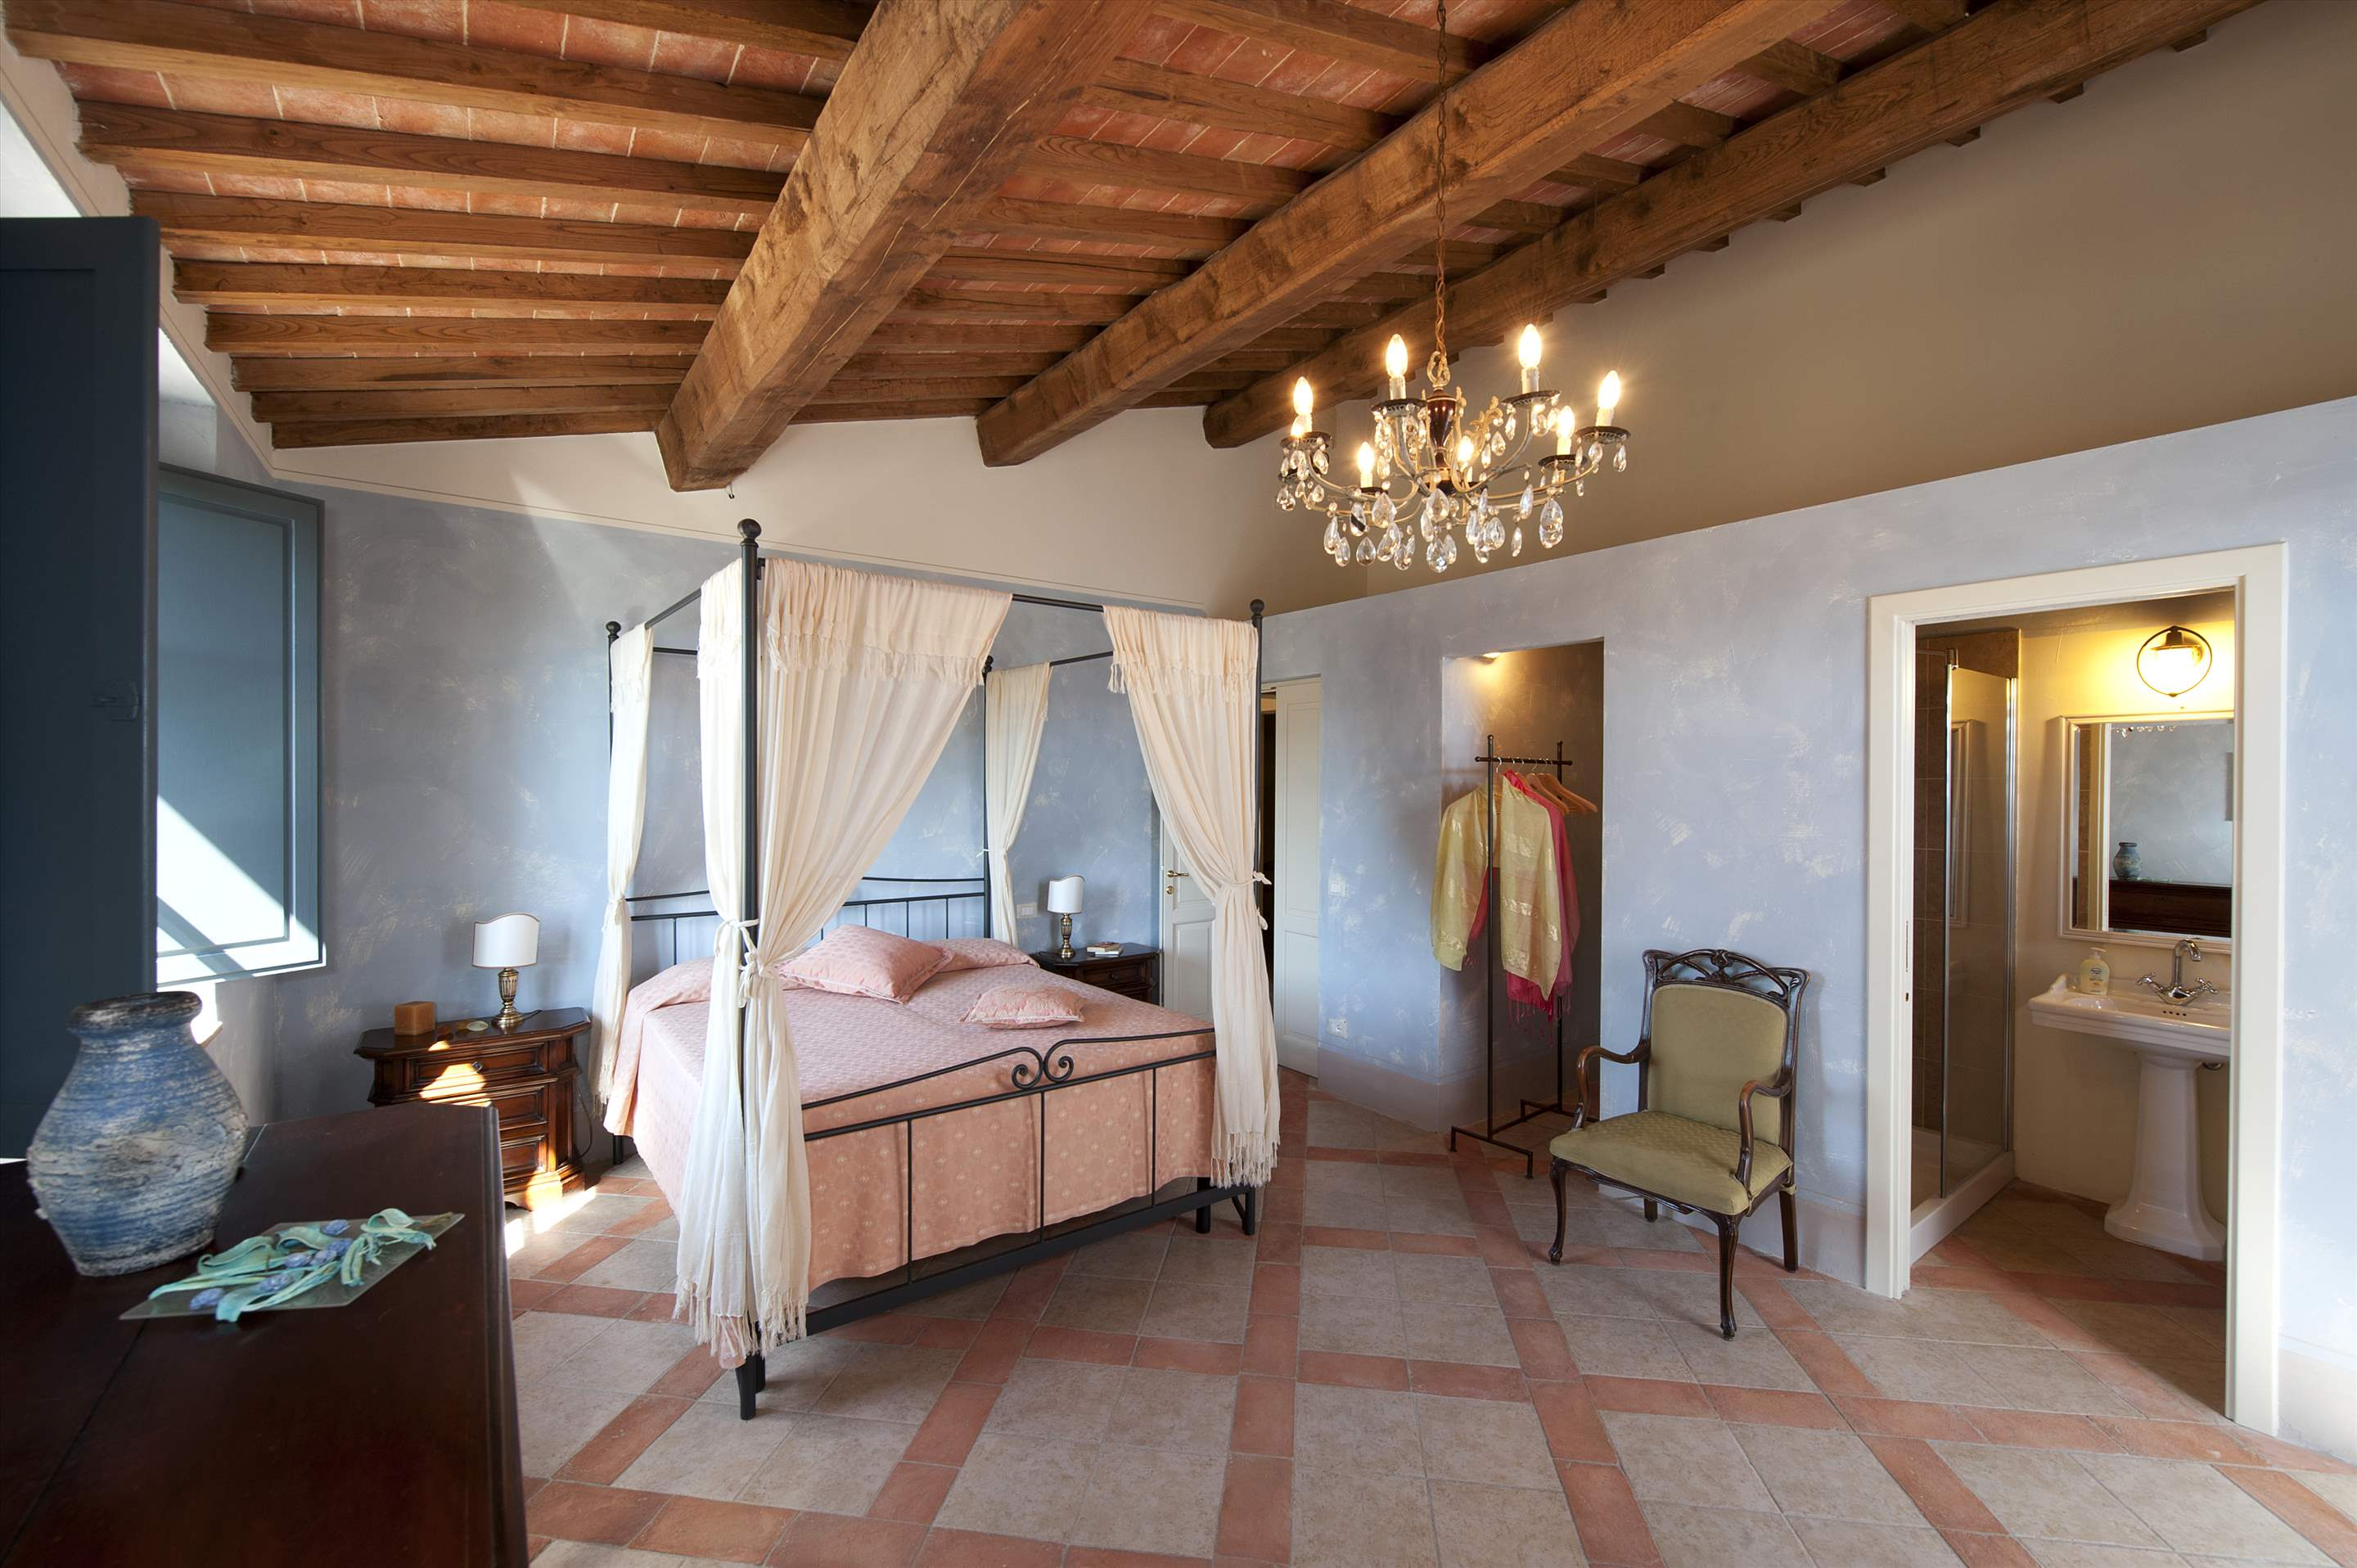 Podere Casacce, Ground Floor, 4 bedroom villa in Tuscany Coast, Tuscany Photo #29